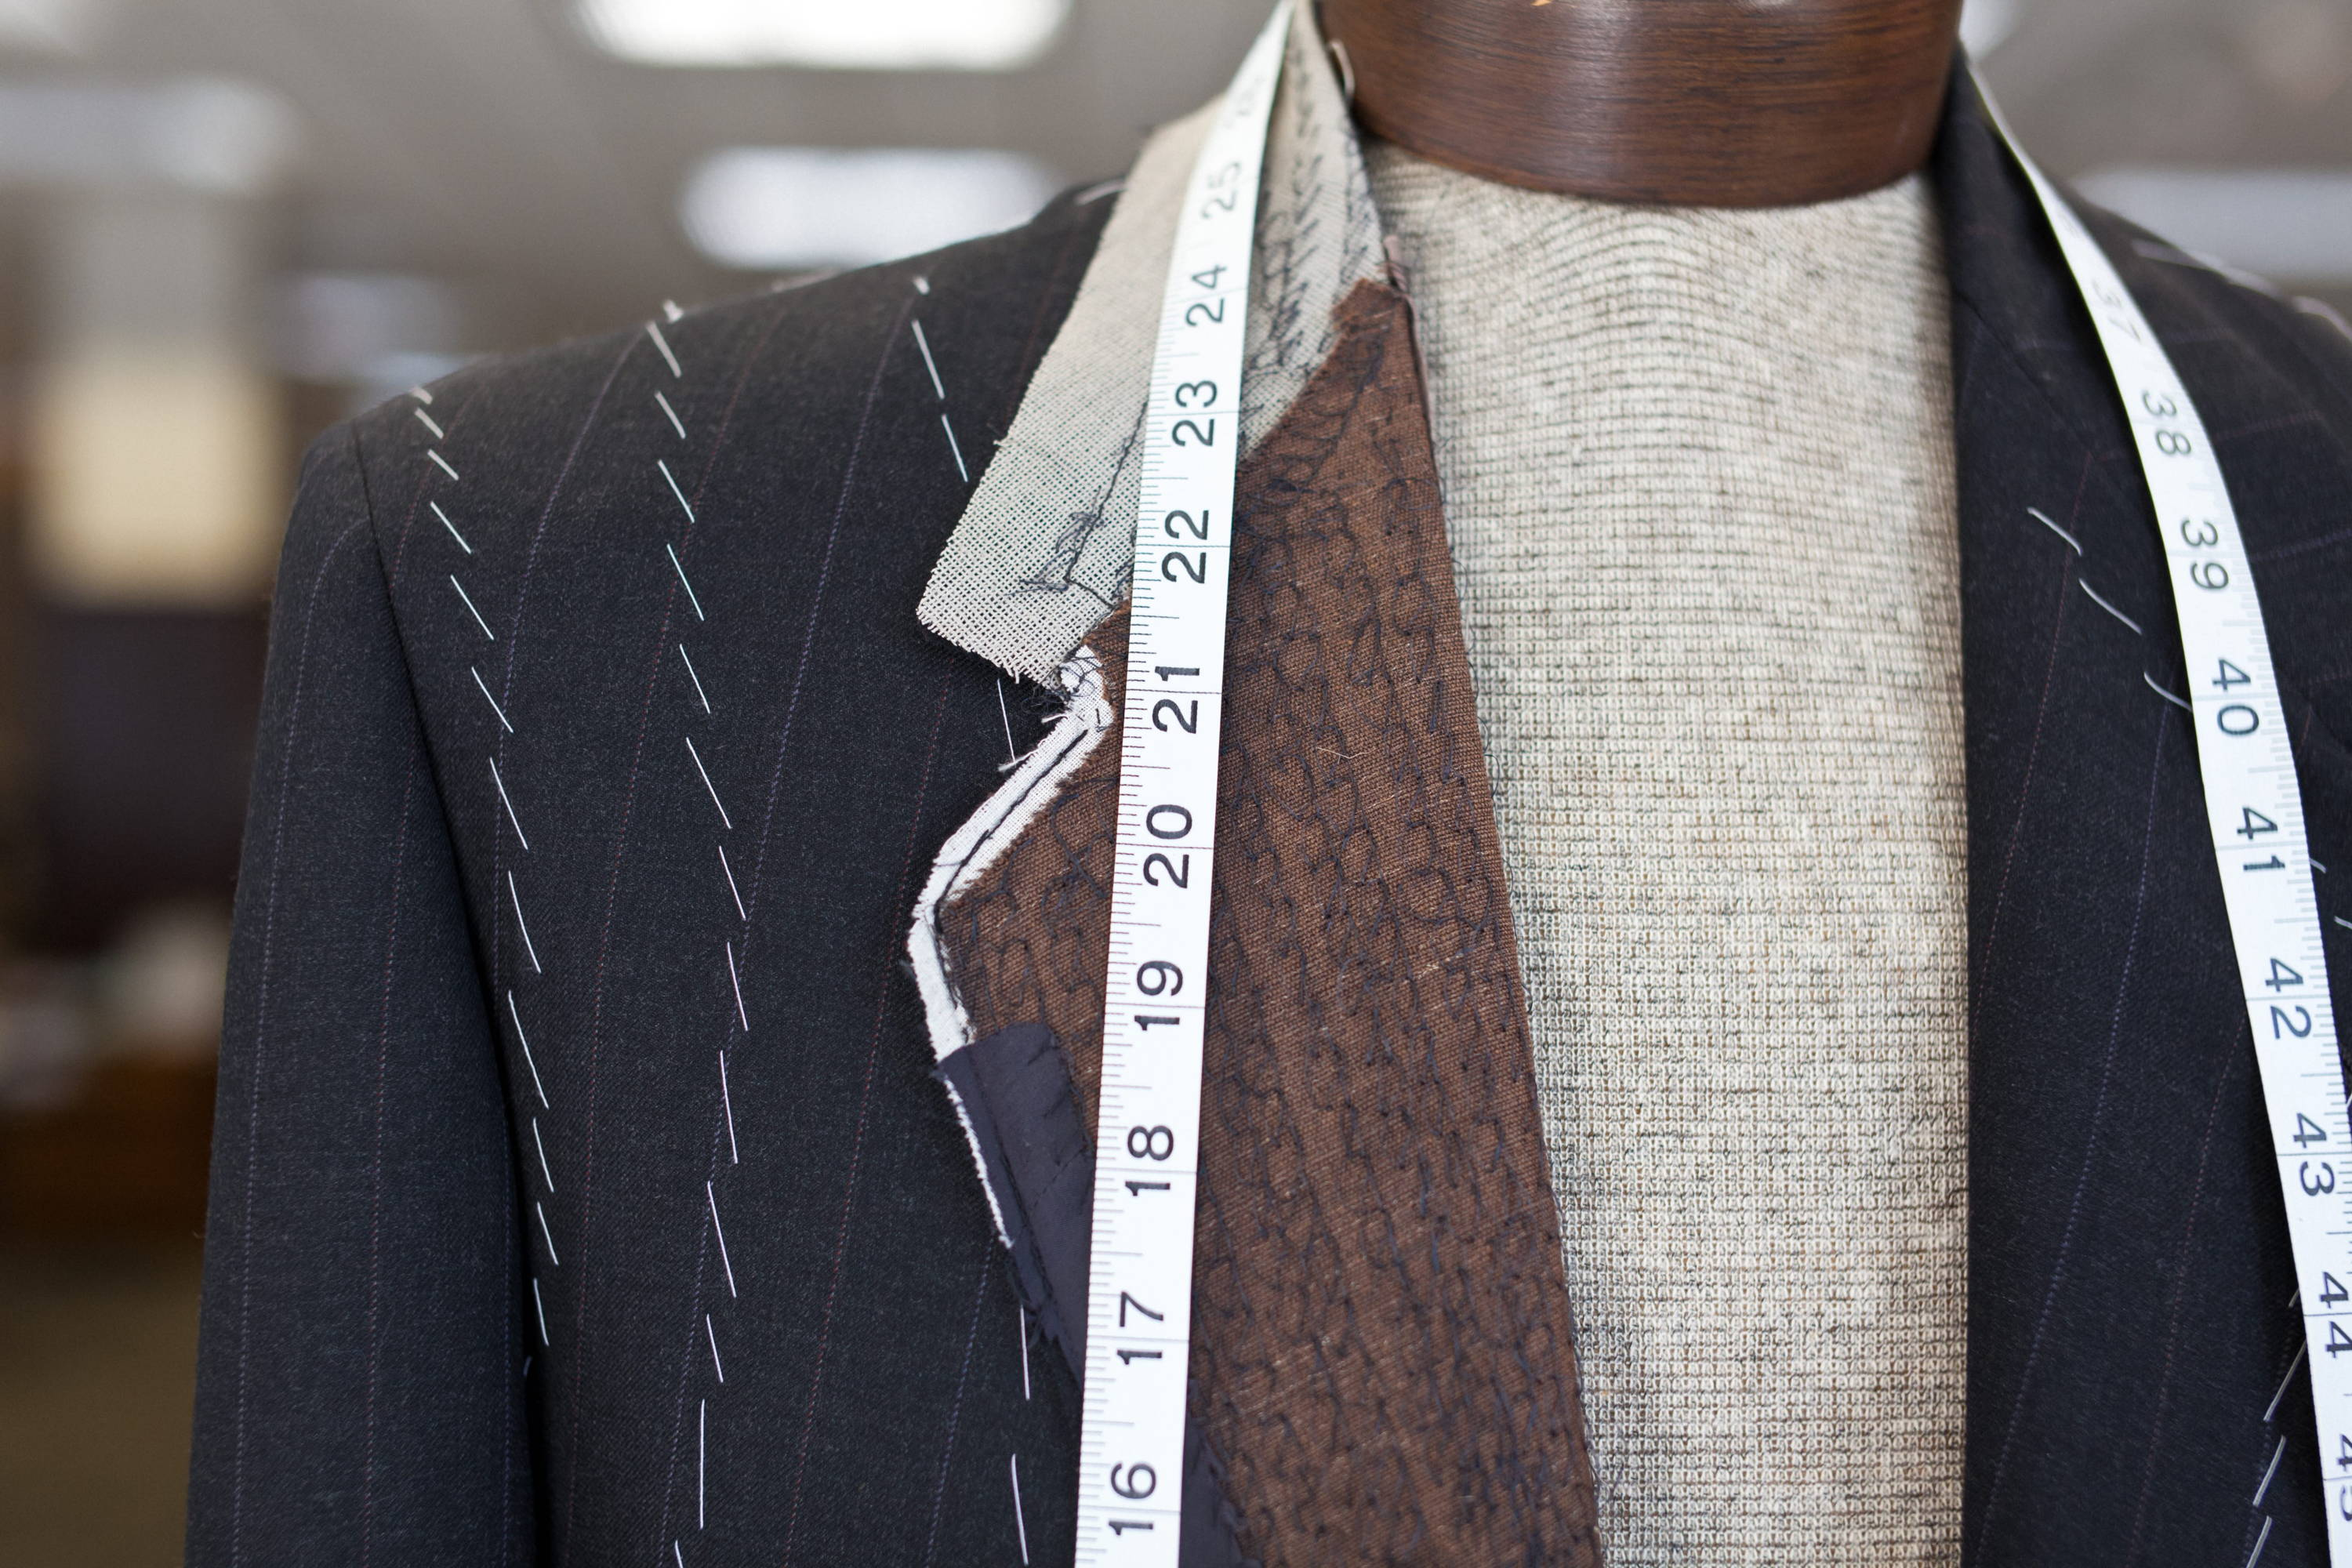 Tailored suit jacket mid-construction with pad stitching and basting